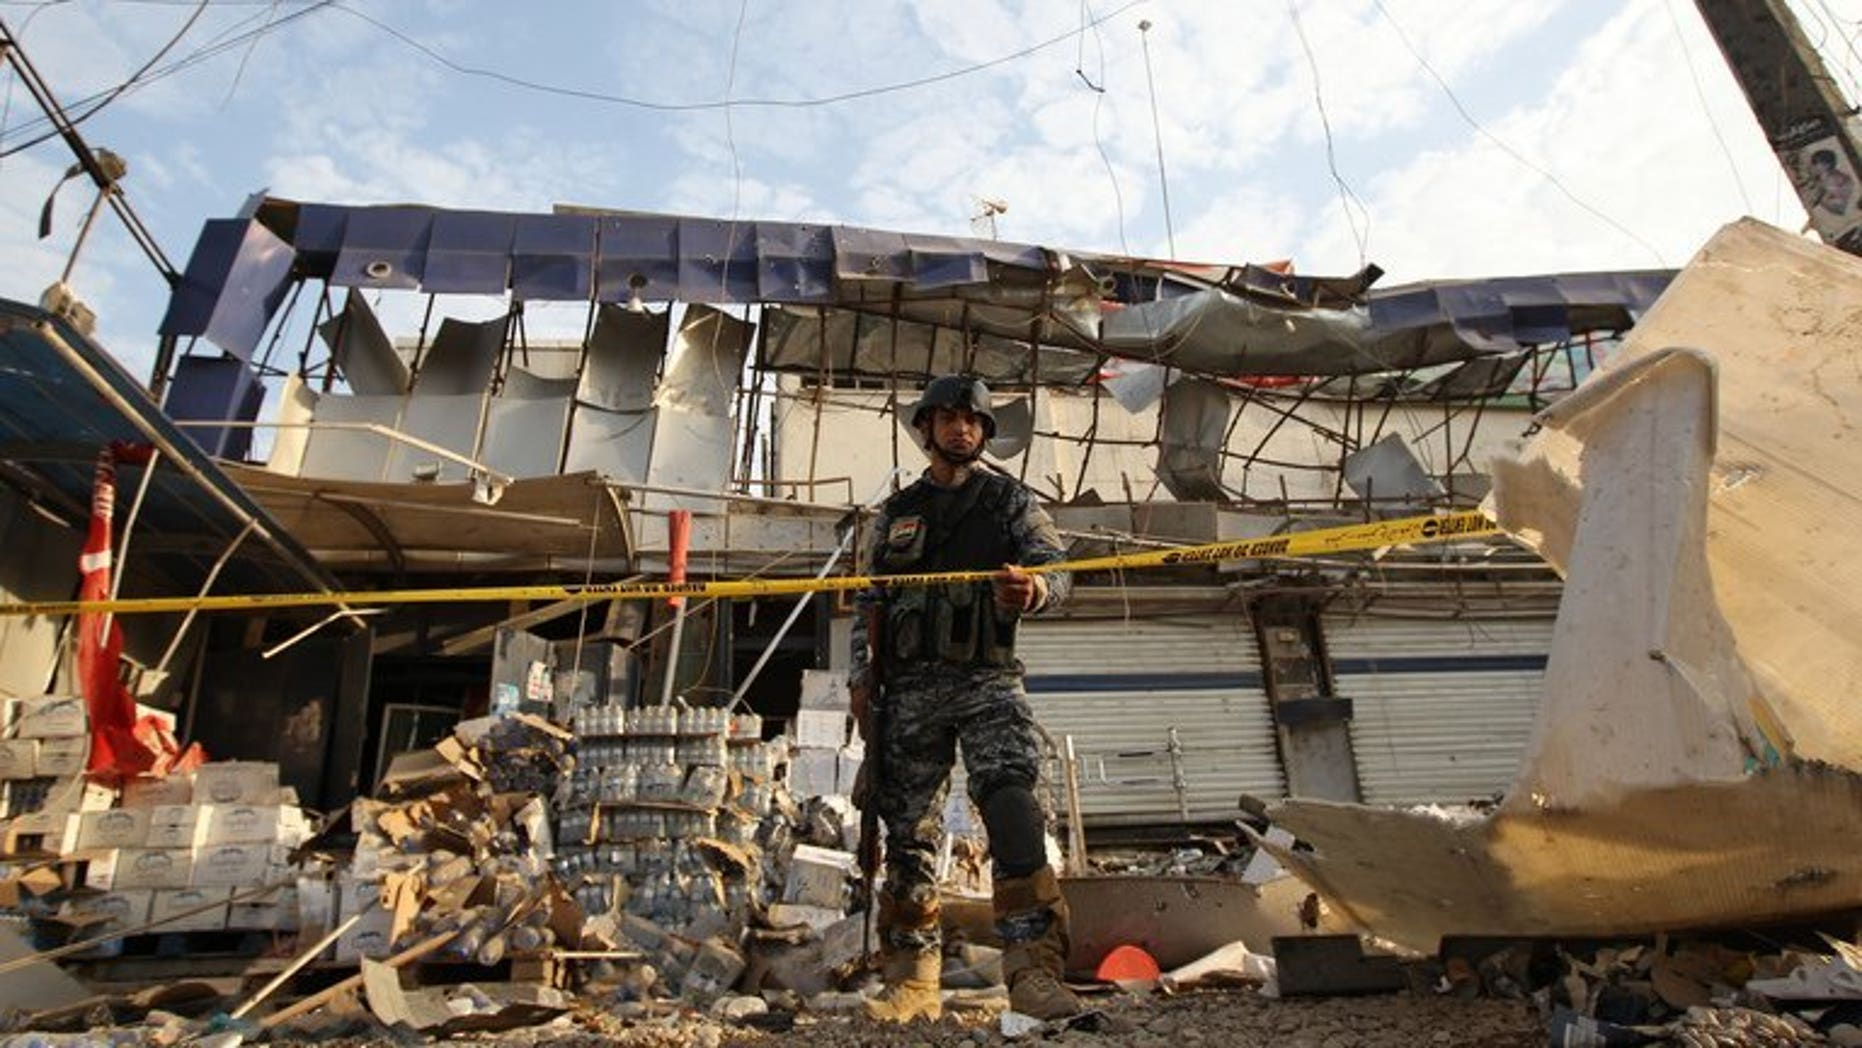 An Iraqi policeman inspects the damage outside a supermarket in central Baghdad's commercial Karrada neighbourhood on June 25, 2013. At least 22 people were killed in a string of car bomb attacks on Saturday timed for nightfall when shoppers take to the streets during Ramadan, security and medics said.